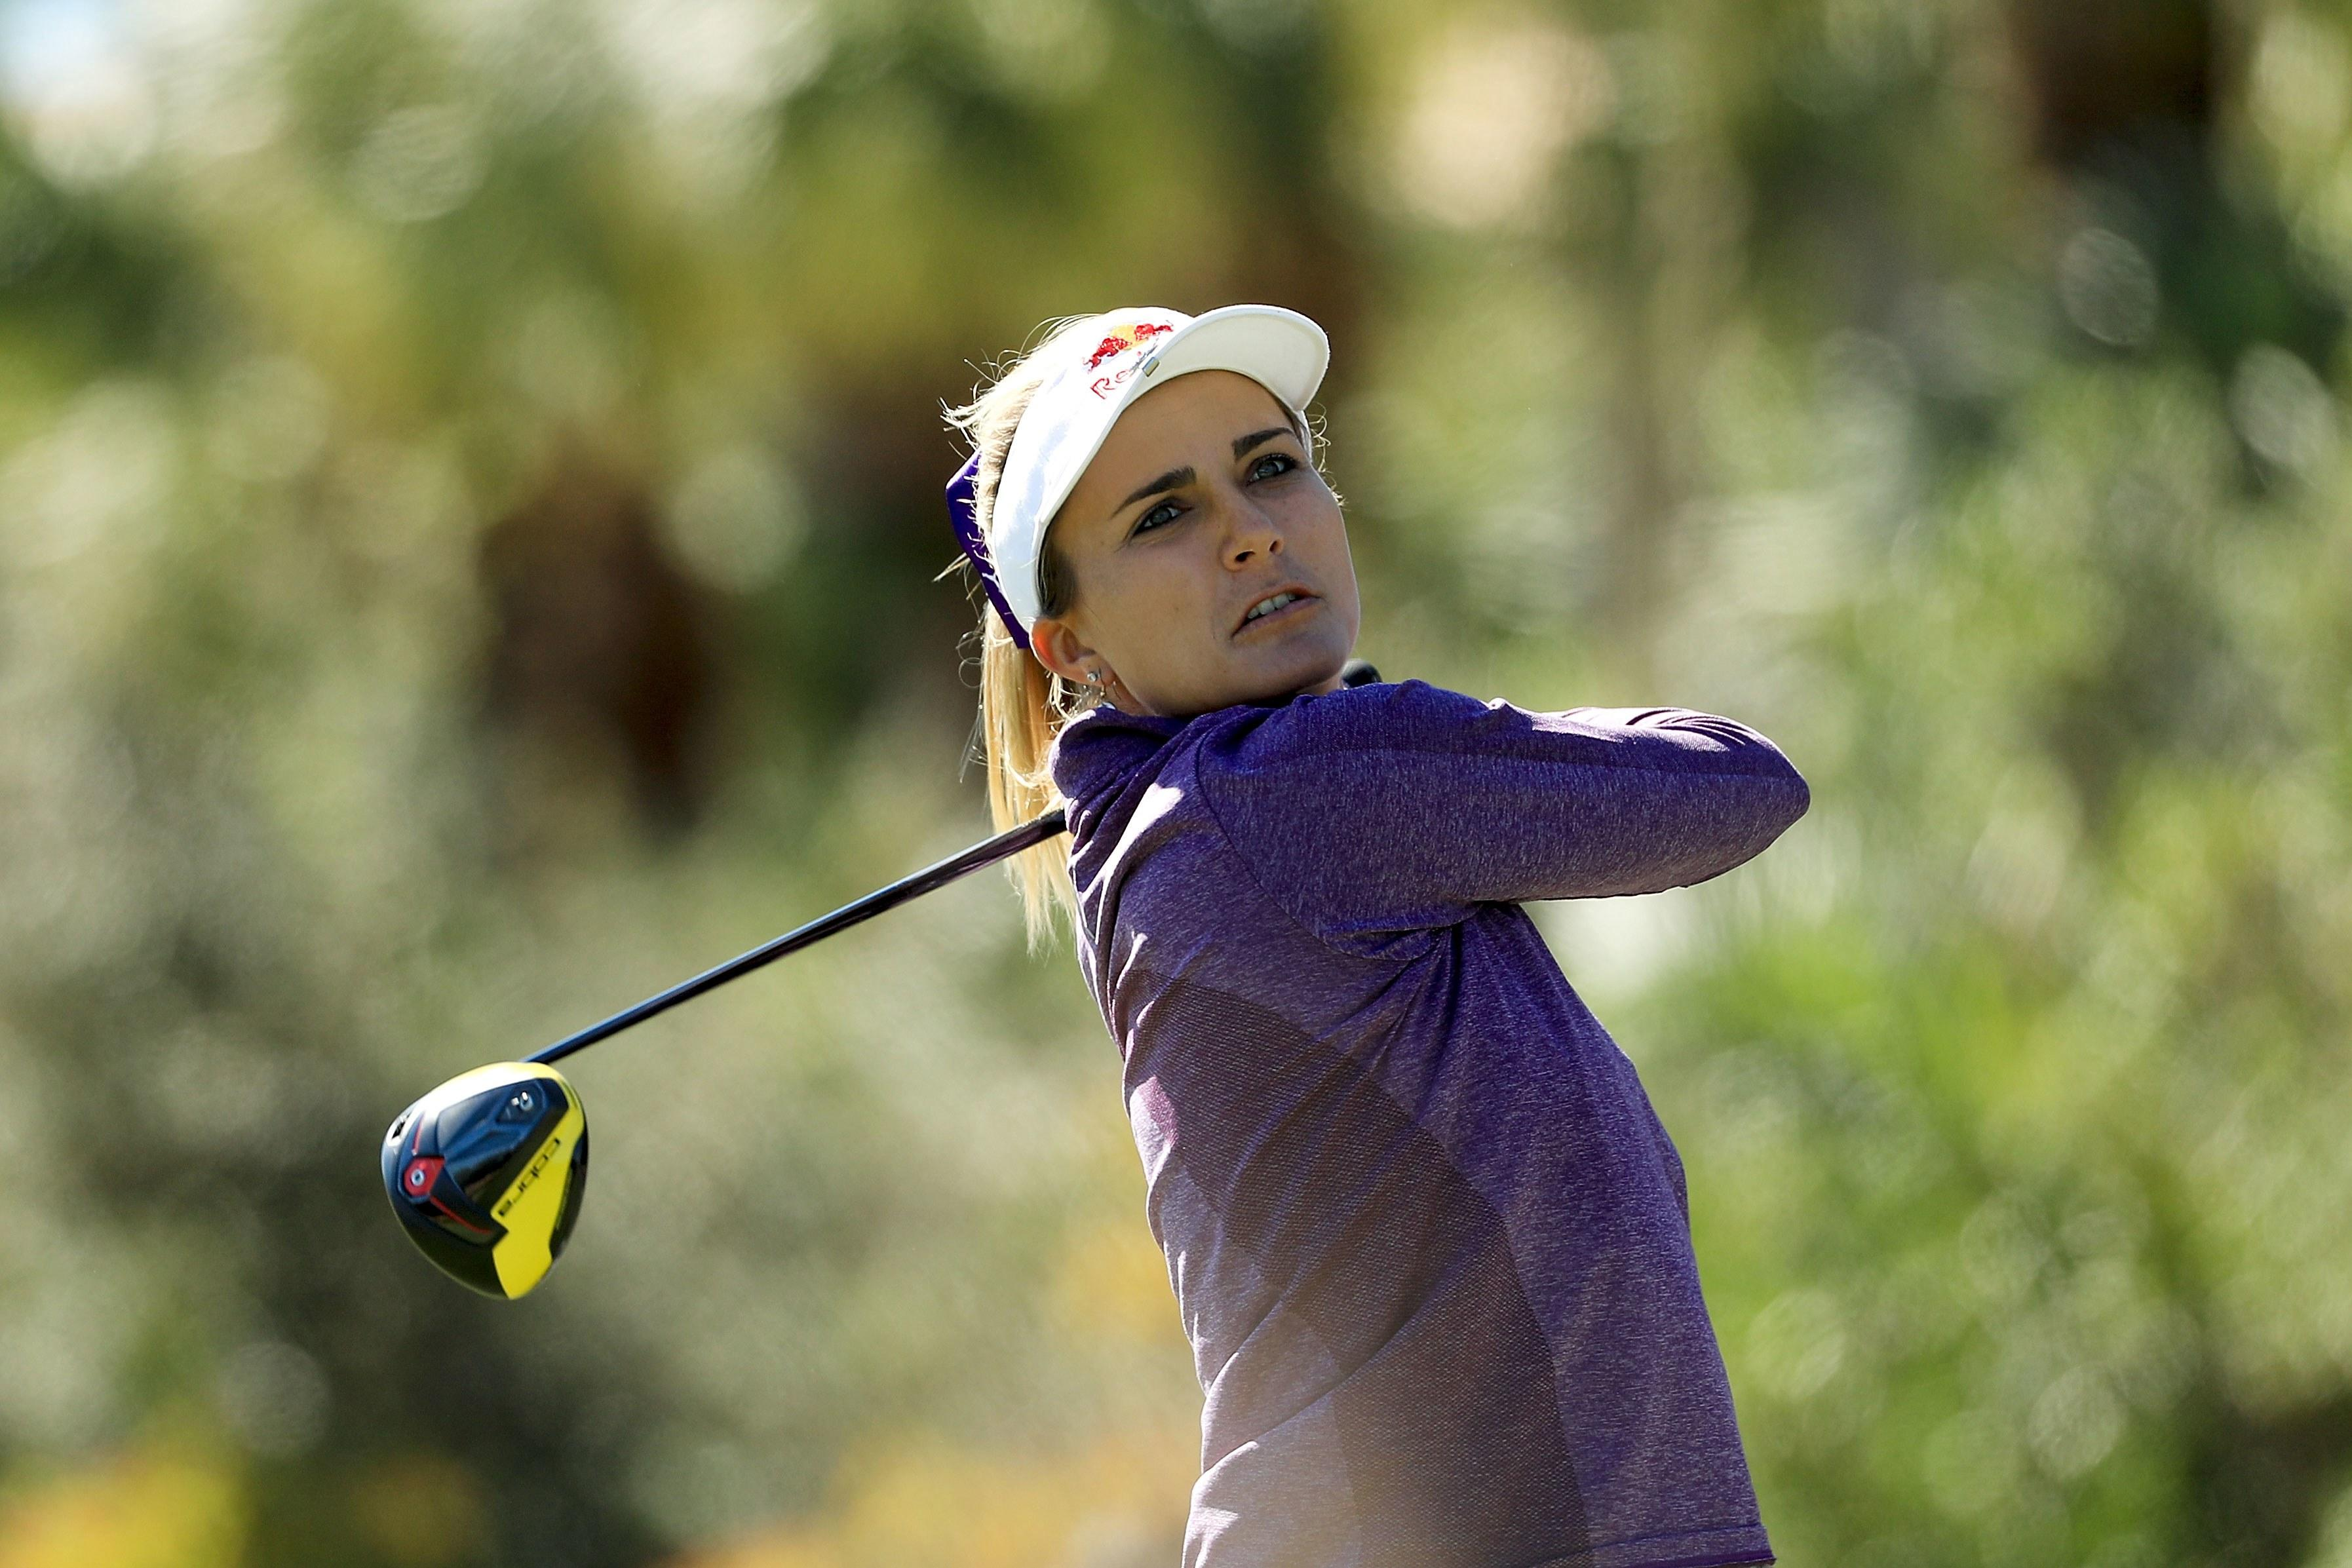 Lexi Thompson enjoys another week playing against the guys, outdriving Charley Hoffman and getting Tiger Woods' attention